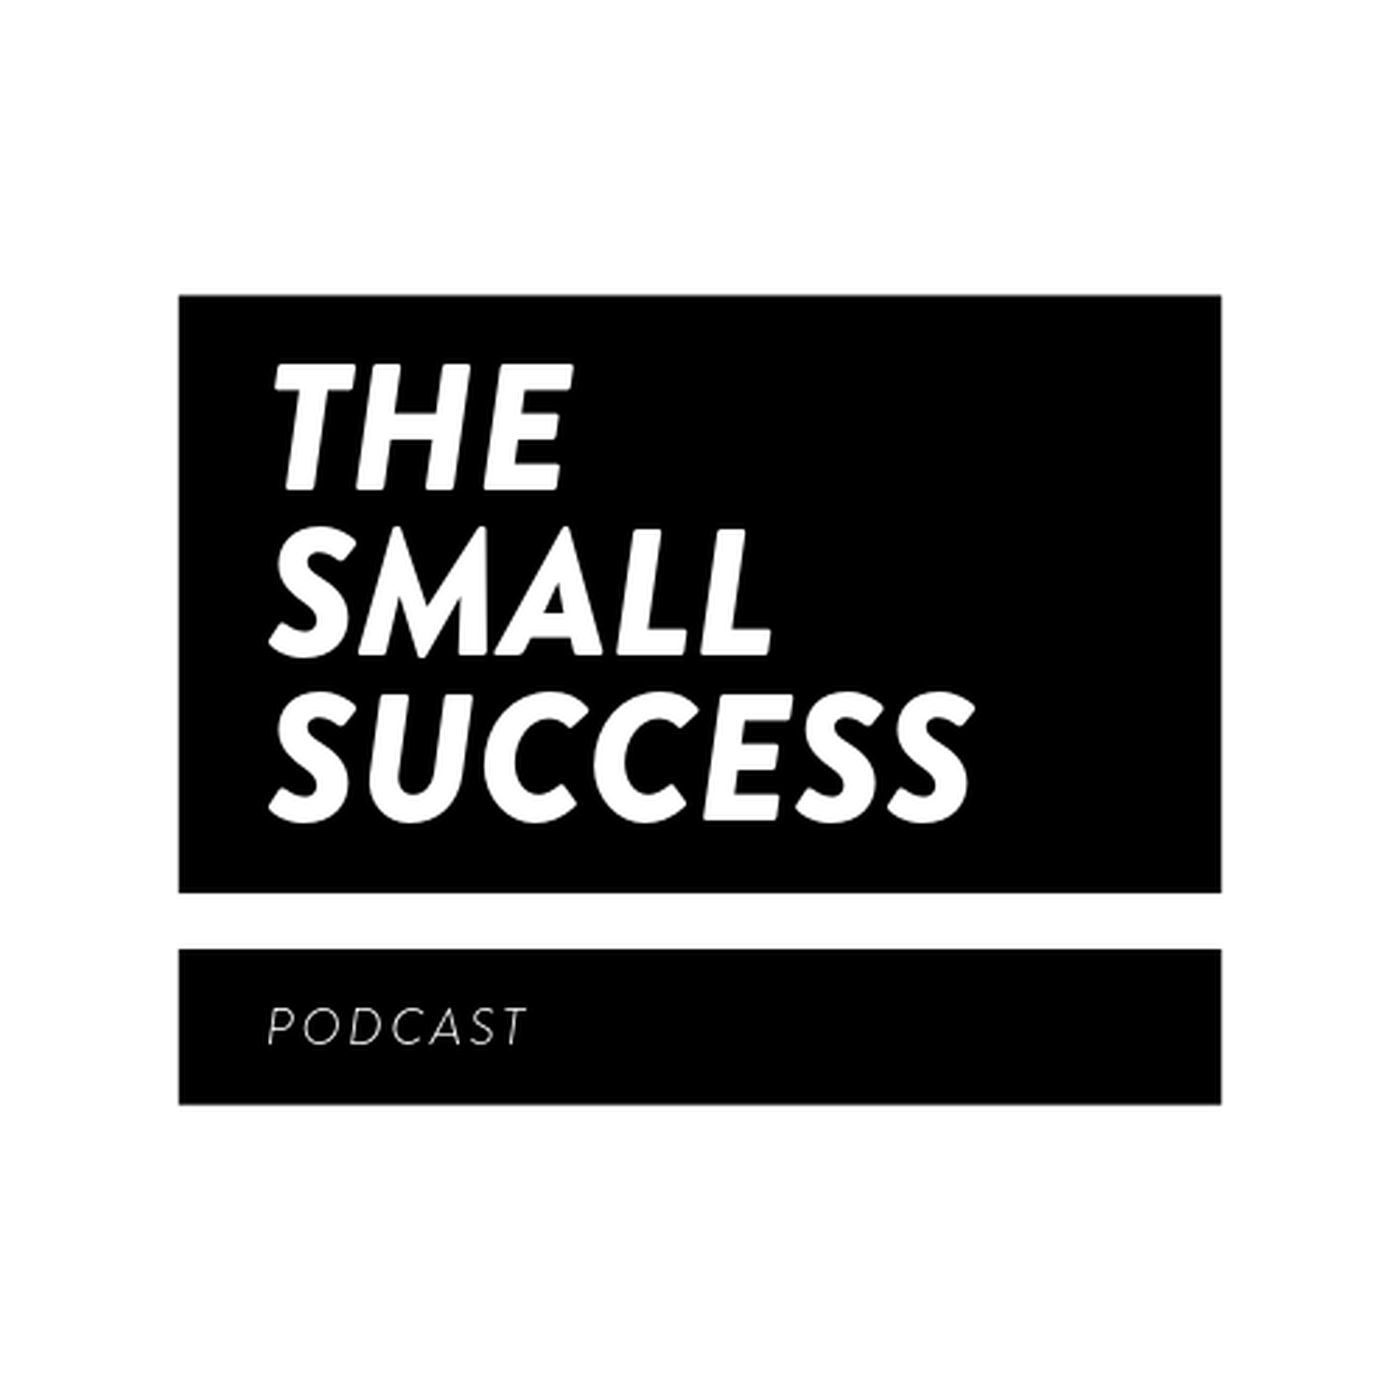 The Small Success Podcast